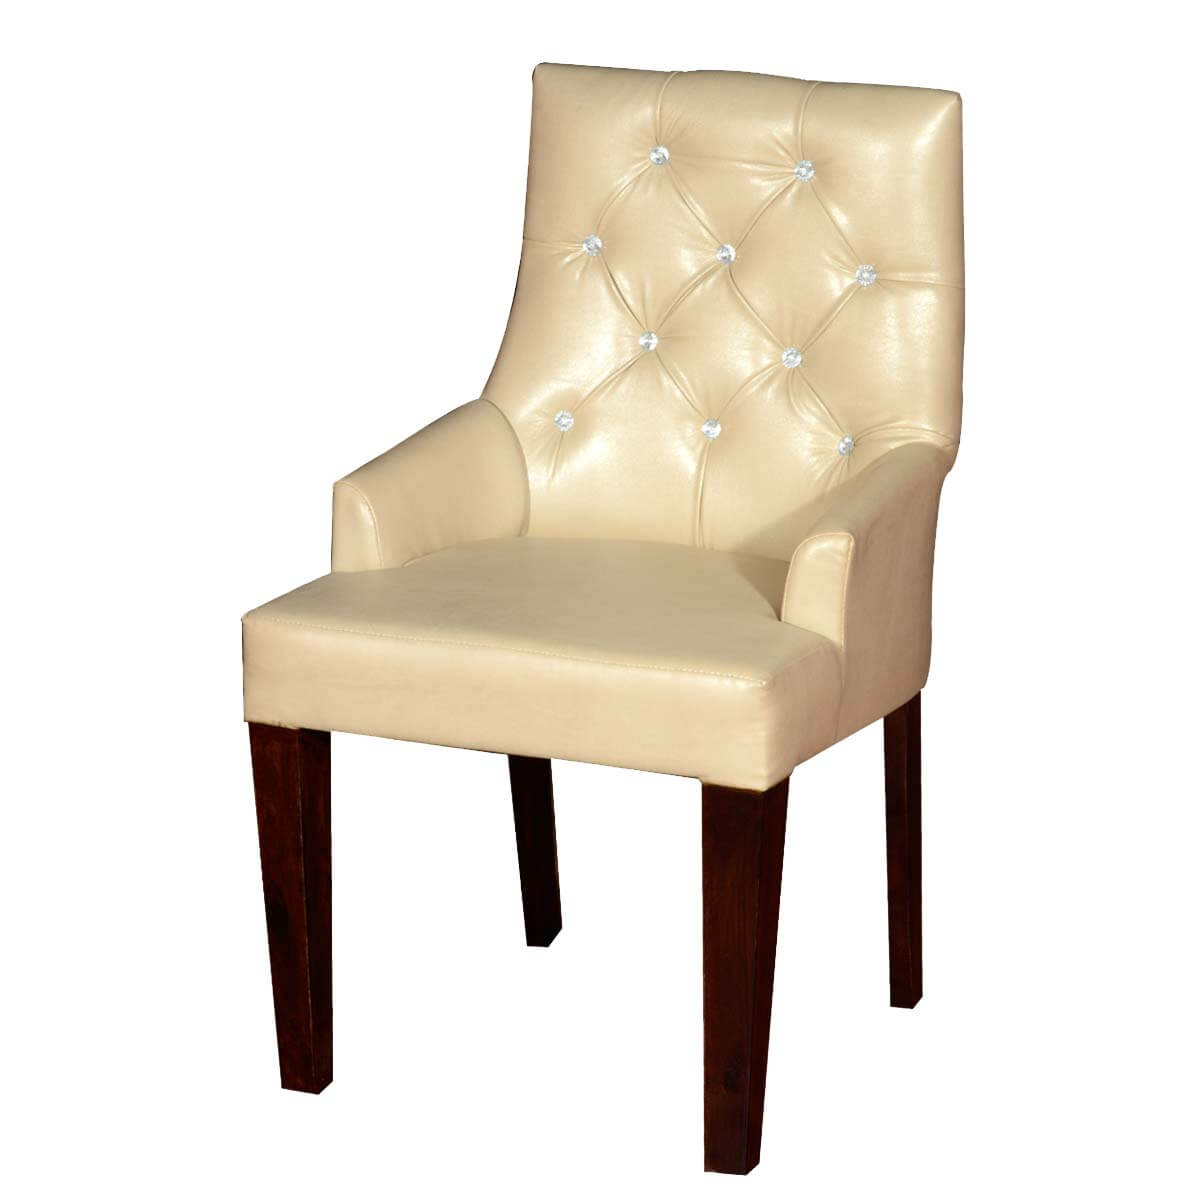 Contemporary White Leather Upholstered Solid Wood Chair